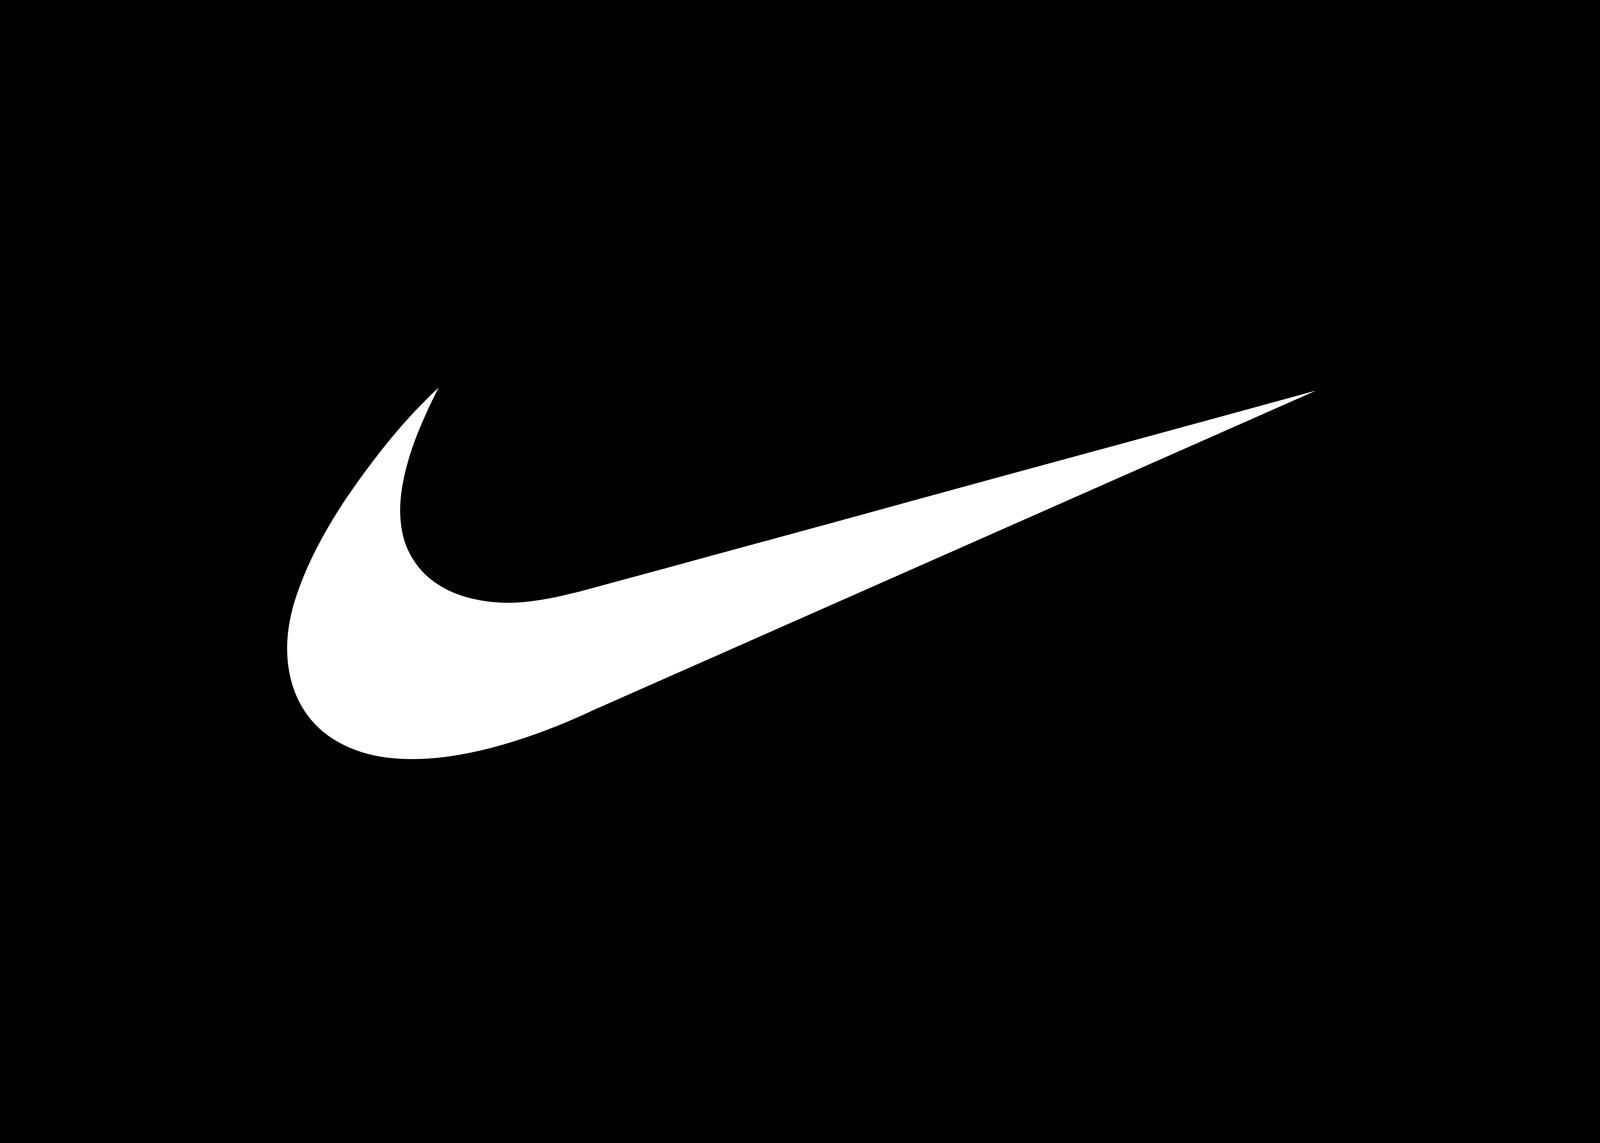 Todo el mundo Usual Río Paraná  NIKE, Inc. Announces Third Quarter Fiscal 2016 Earnings And Conference Call  in 2020   Nike logo, Nike logo wallpapers, Nike wallpaper